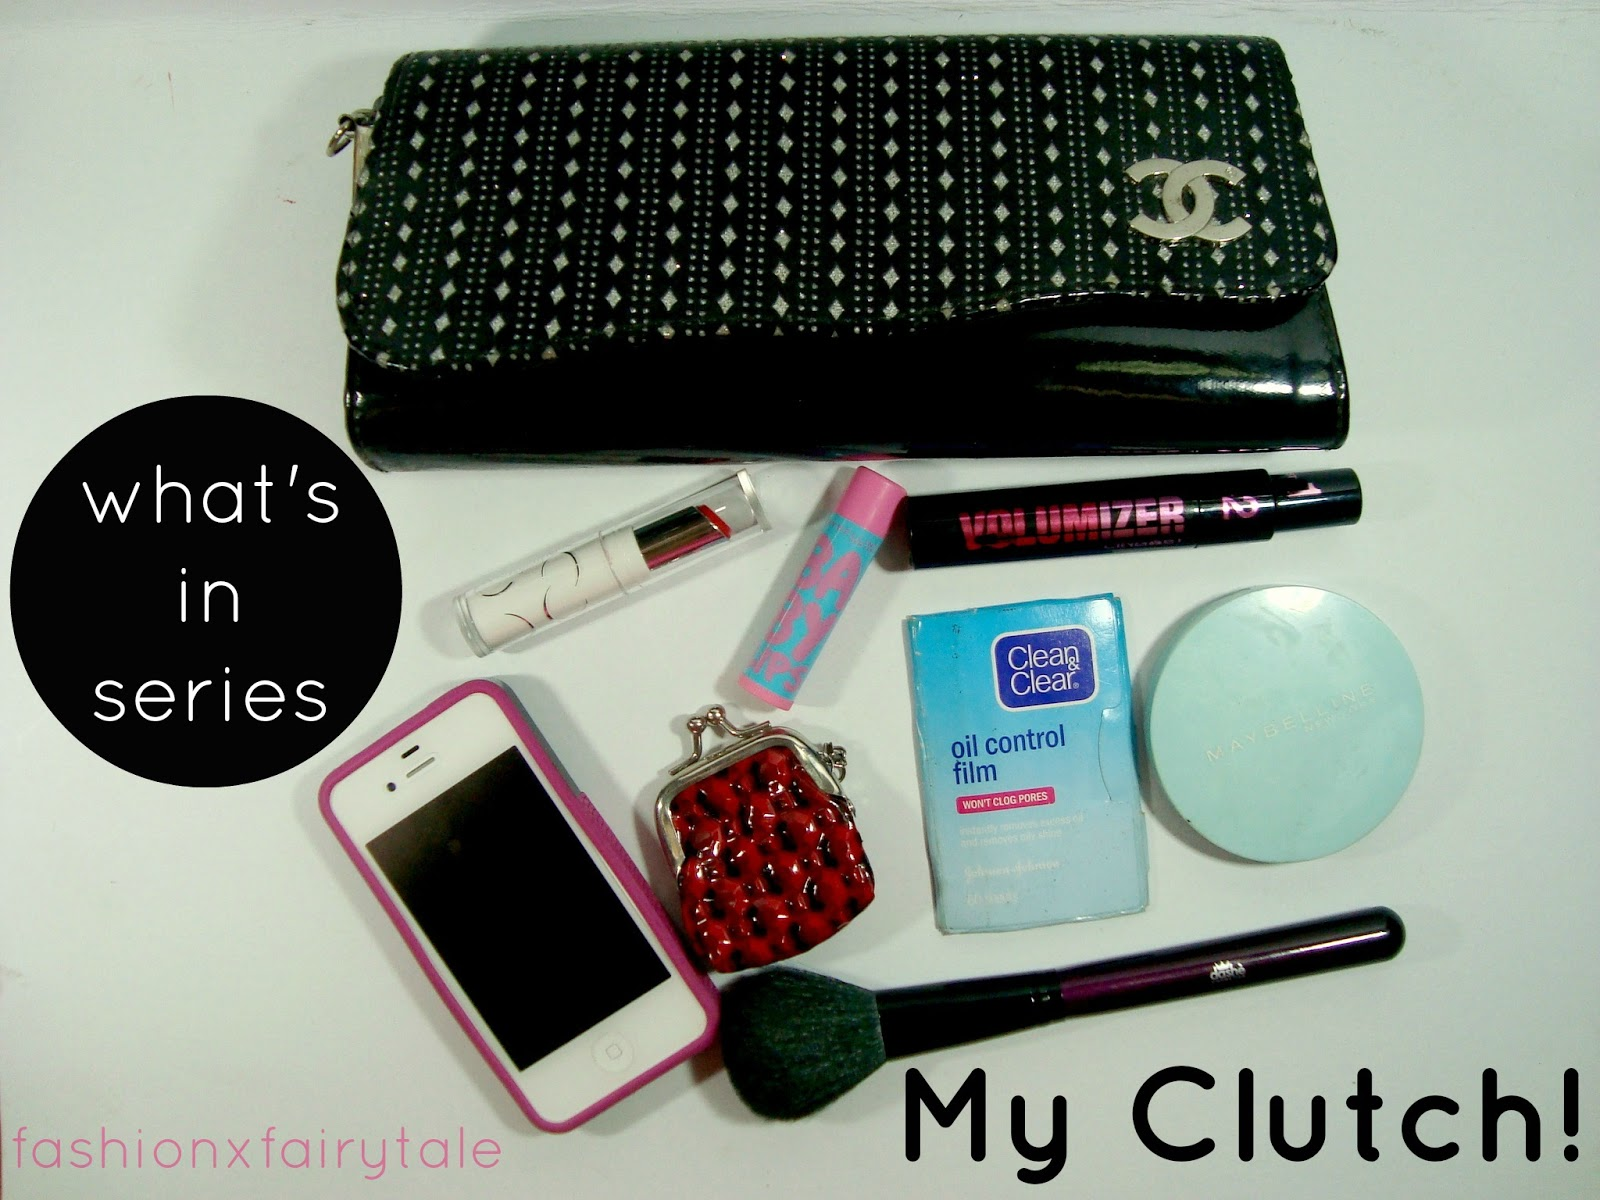 What's in my Clutch?